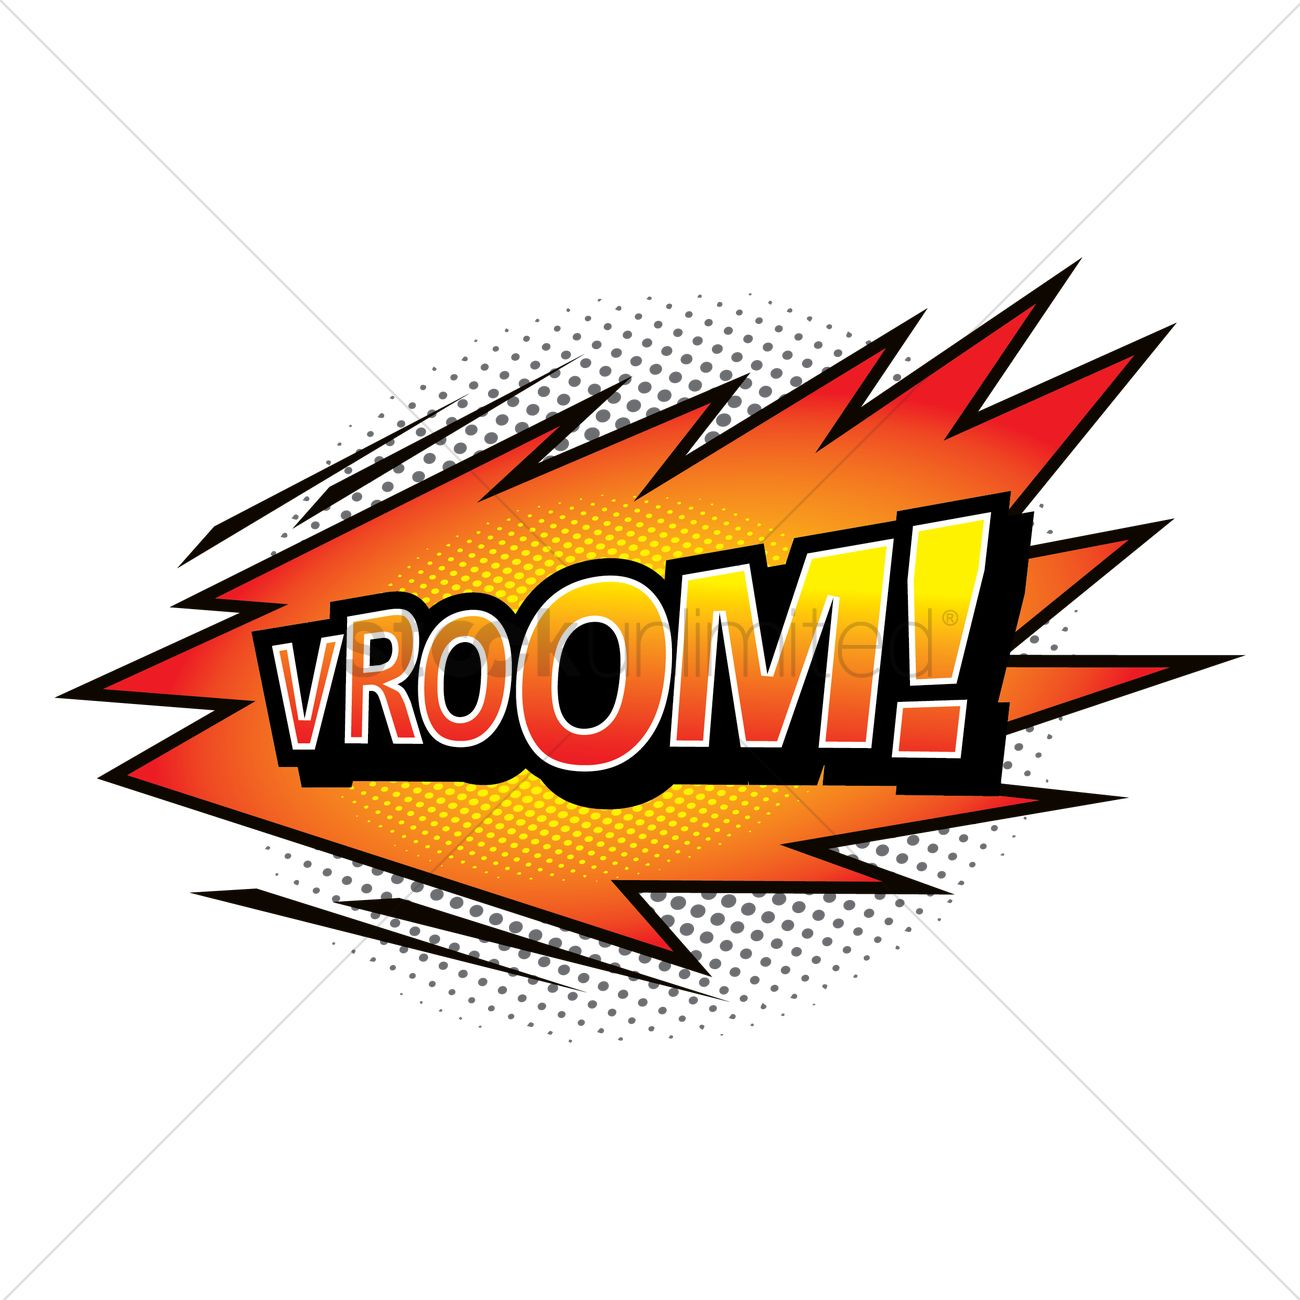 Vroom vroom sign clipart free image free Vroom comic speech bubble Vector Image - 1711047 ... image free